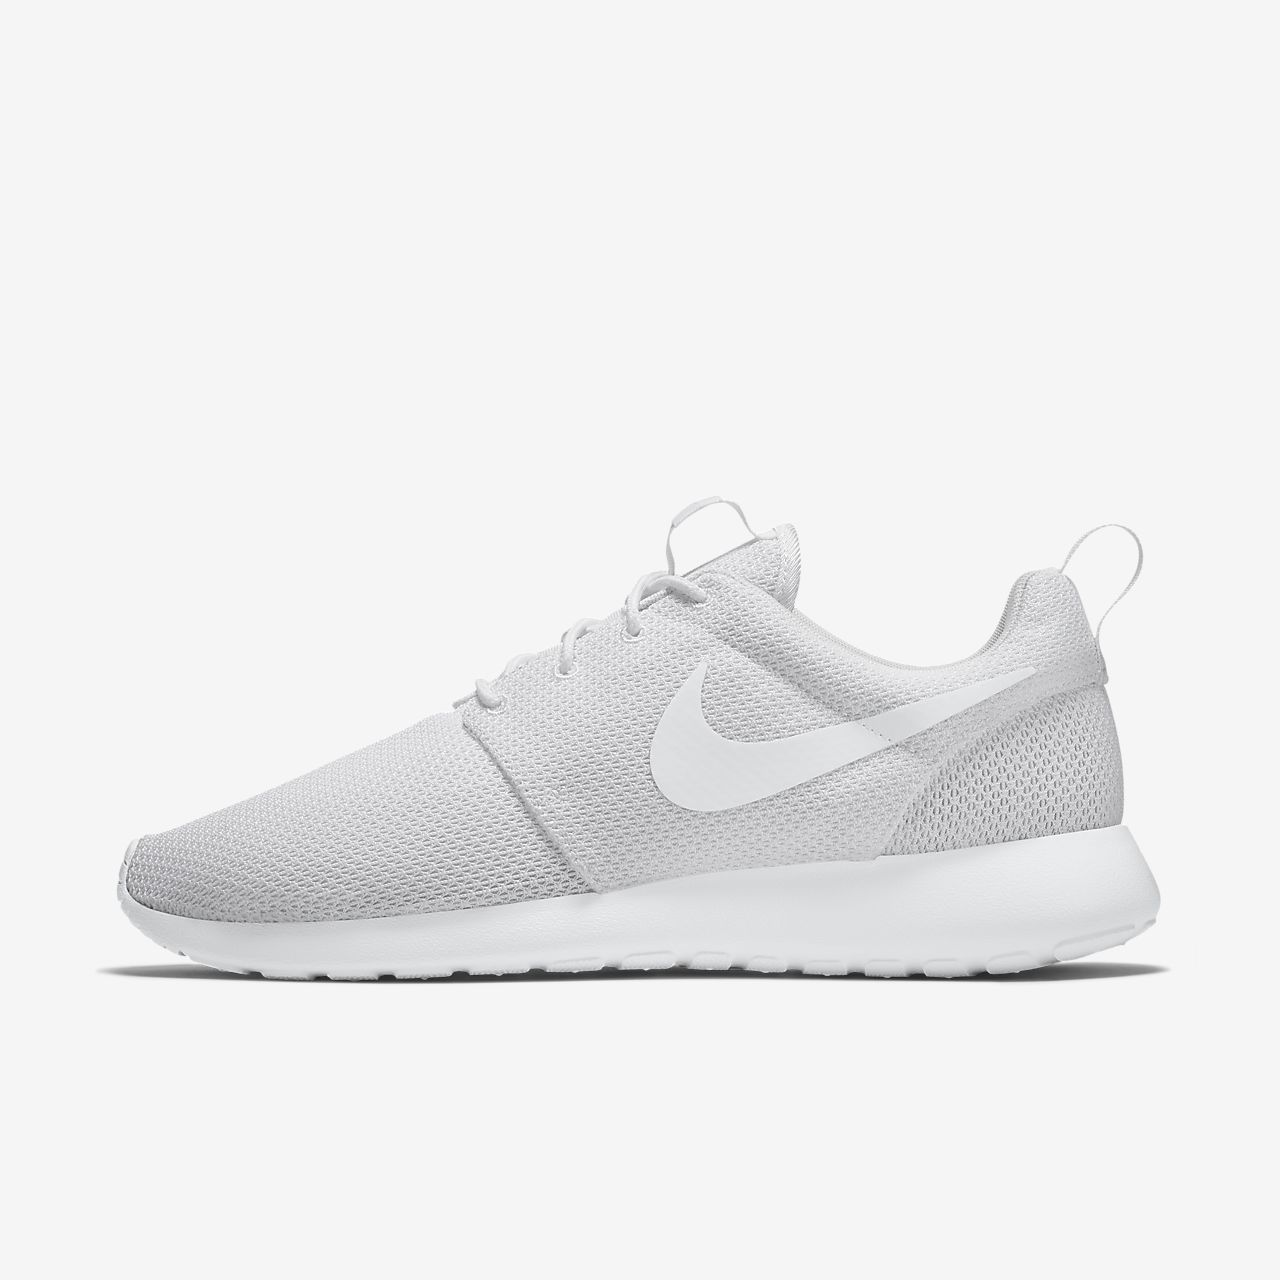 e4f931cec5c Nike Roshe One Men s Shoe. Nike.com